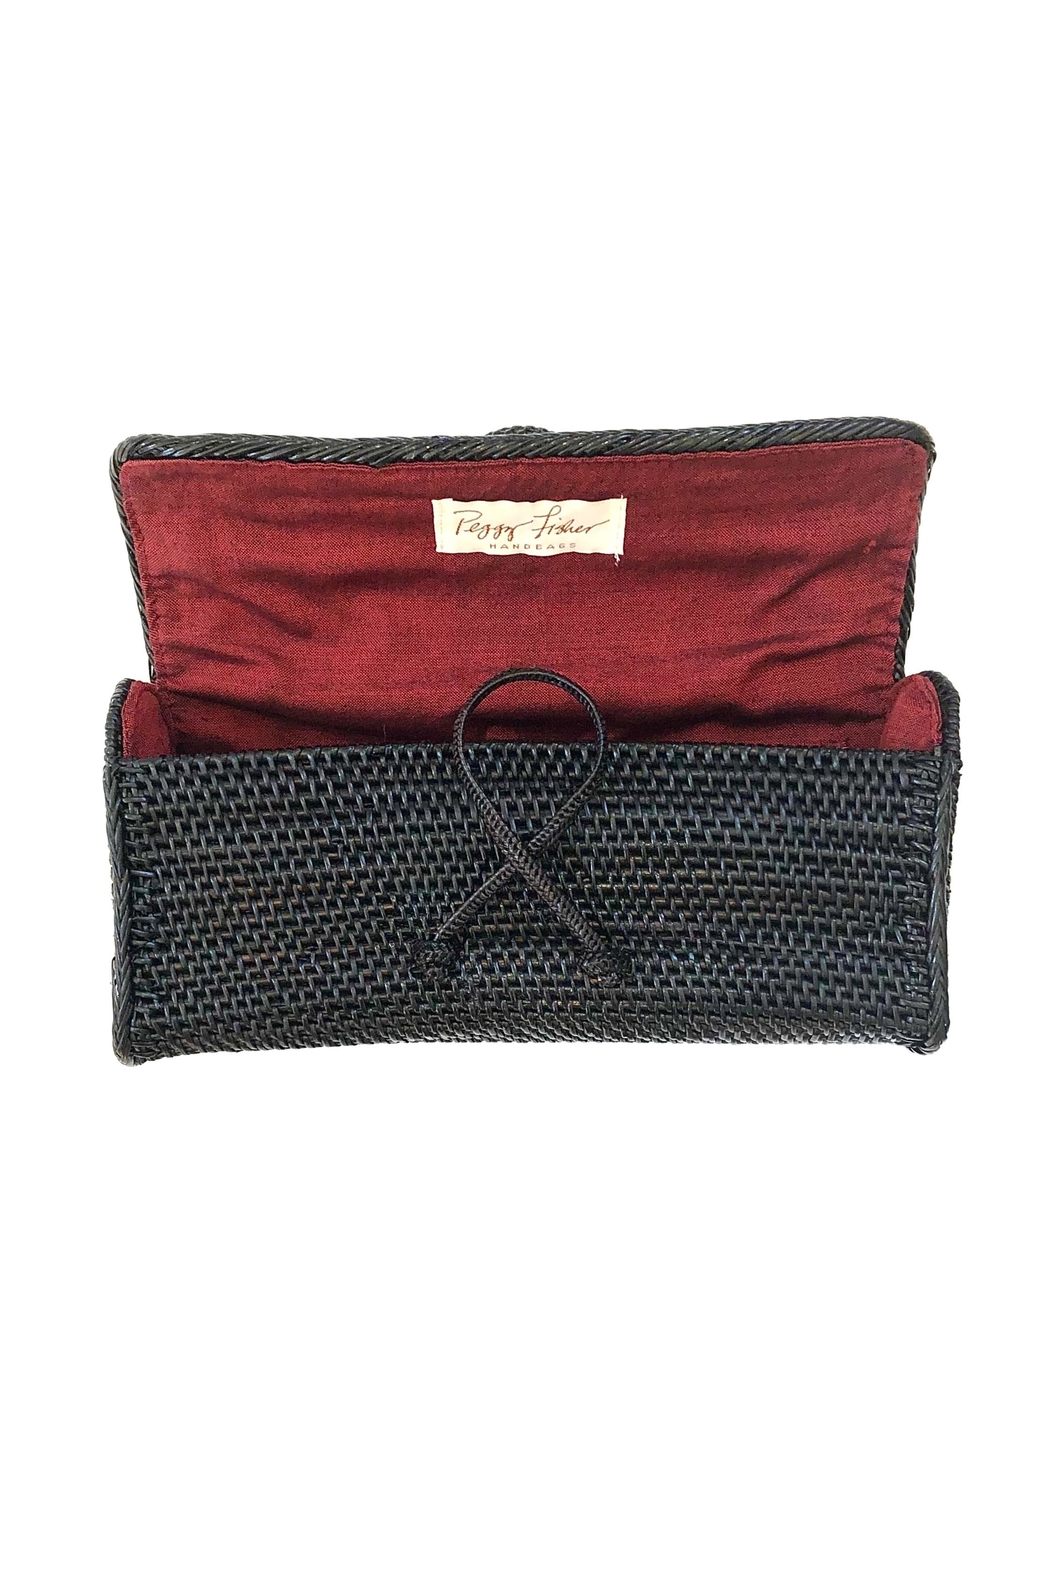 Hancock Baskets Peggy Fisher Clutch - Front Full Image